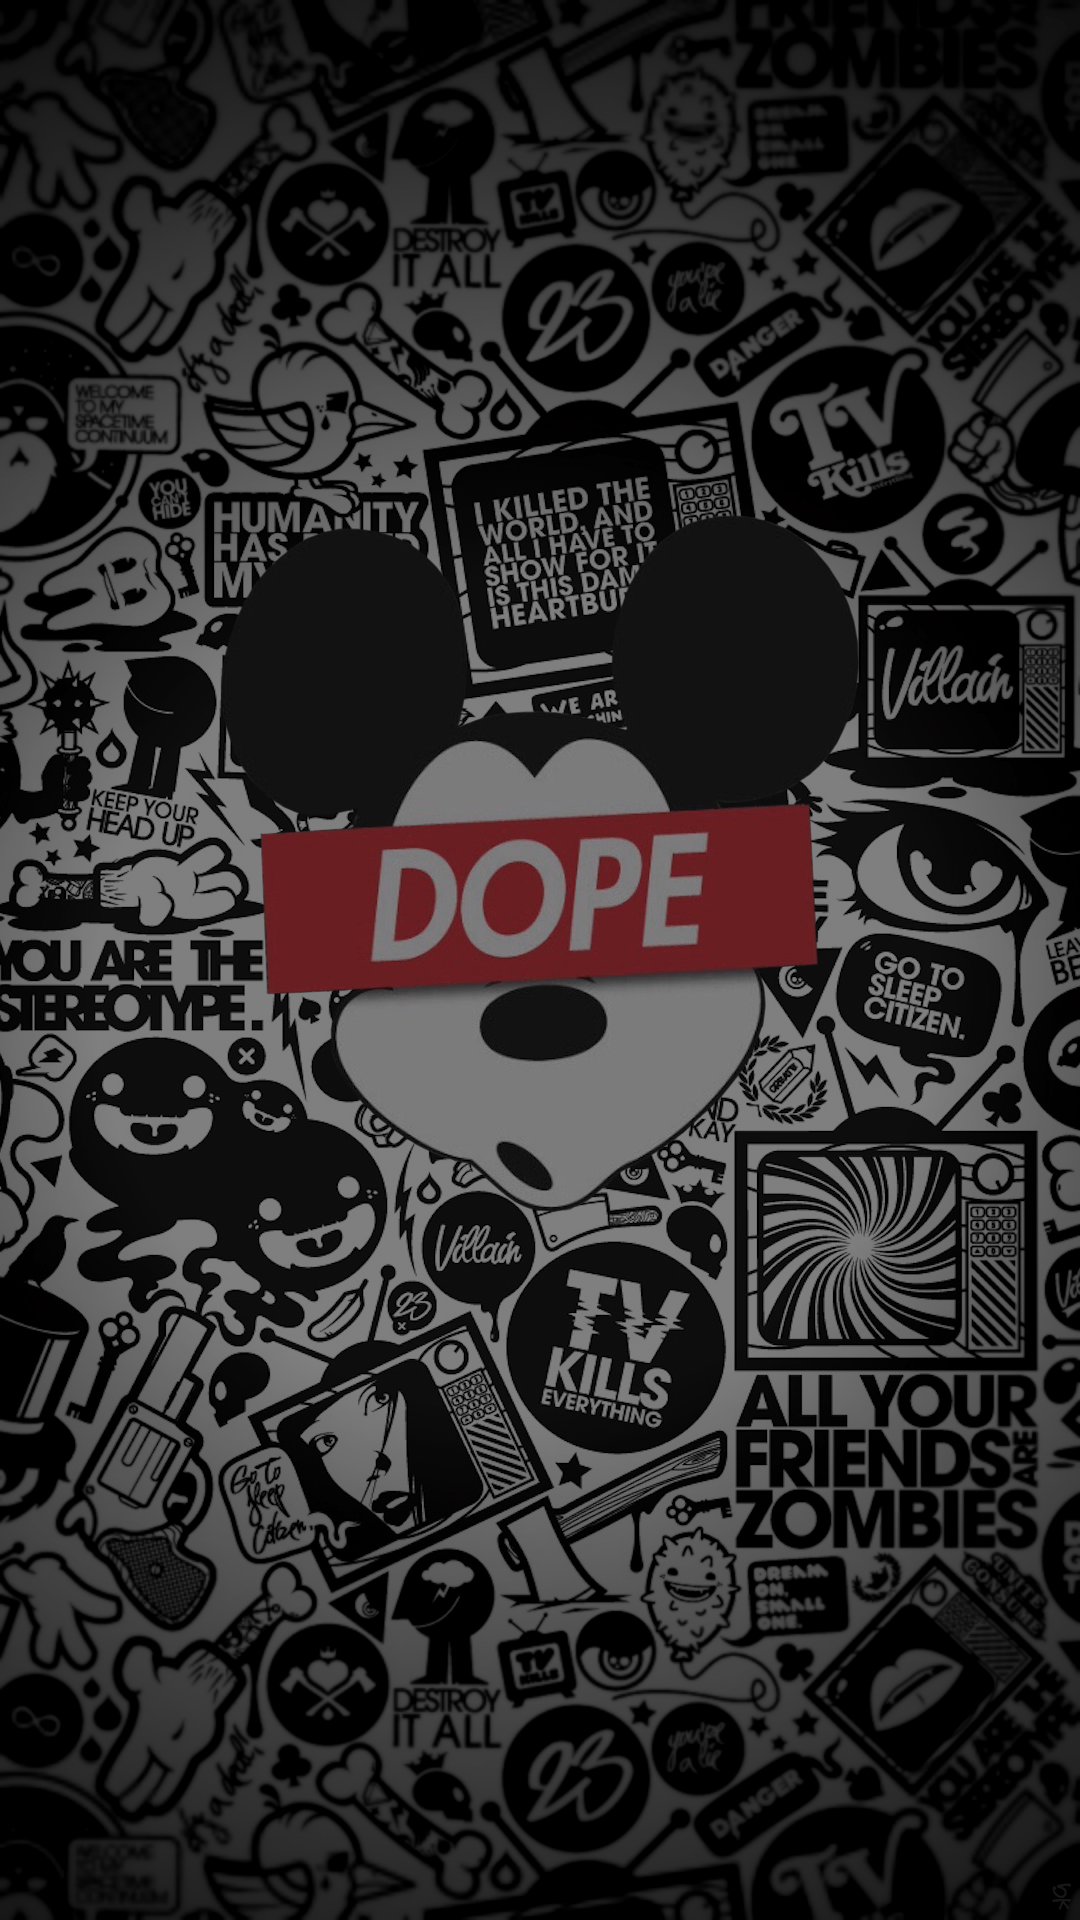 1080x1920 Mickey Dope - Tap to see more Dope wallpaper! - @mobile9 | iPhone 8 ...